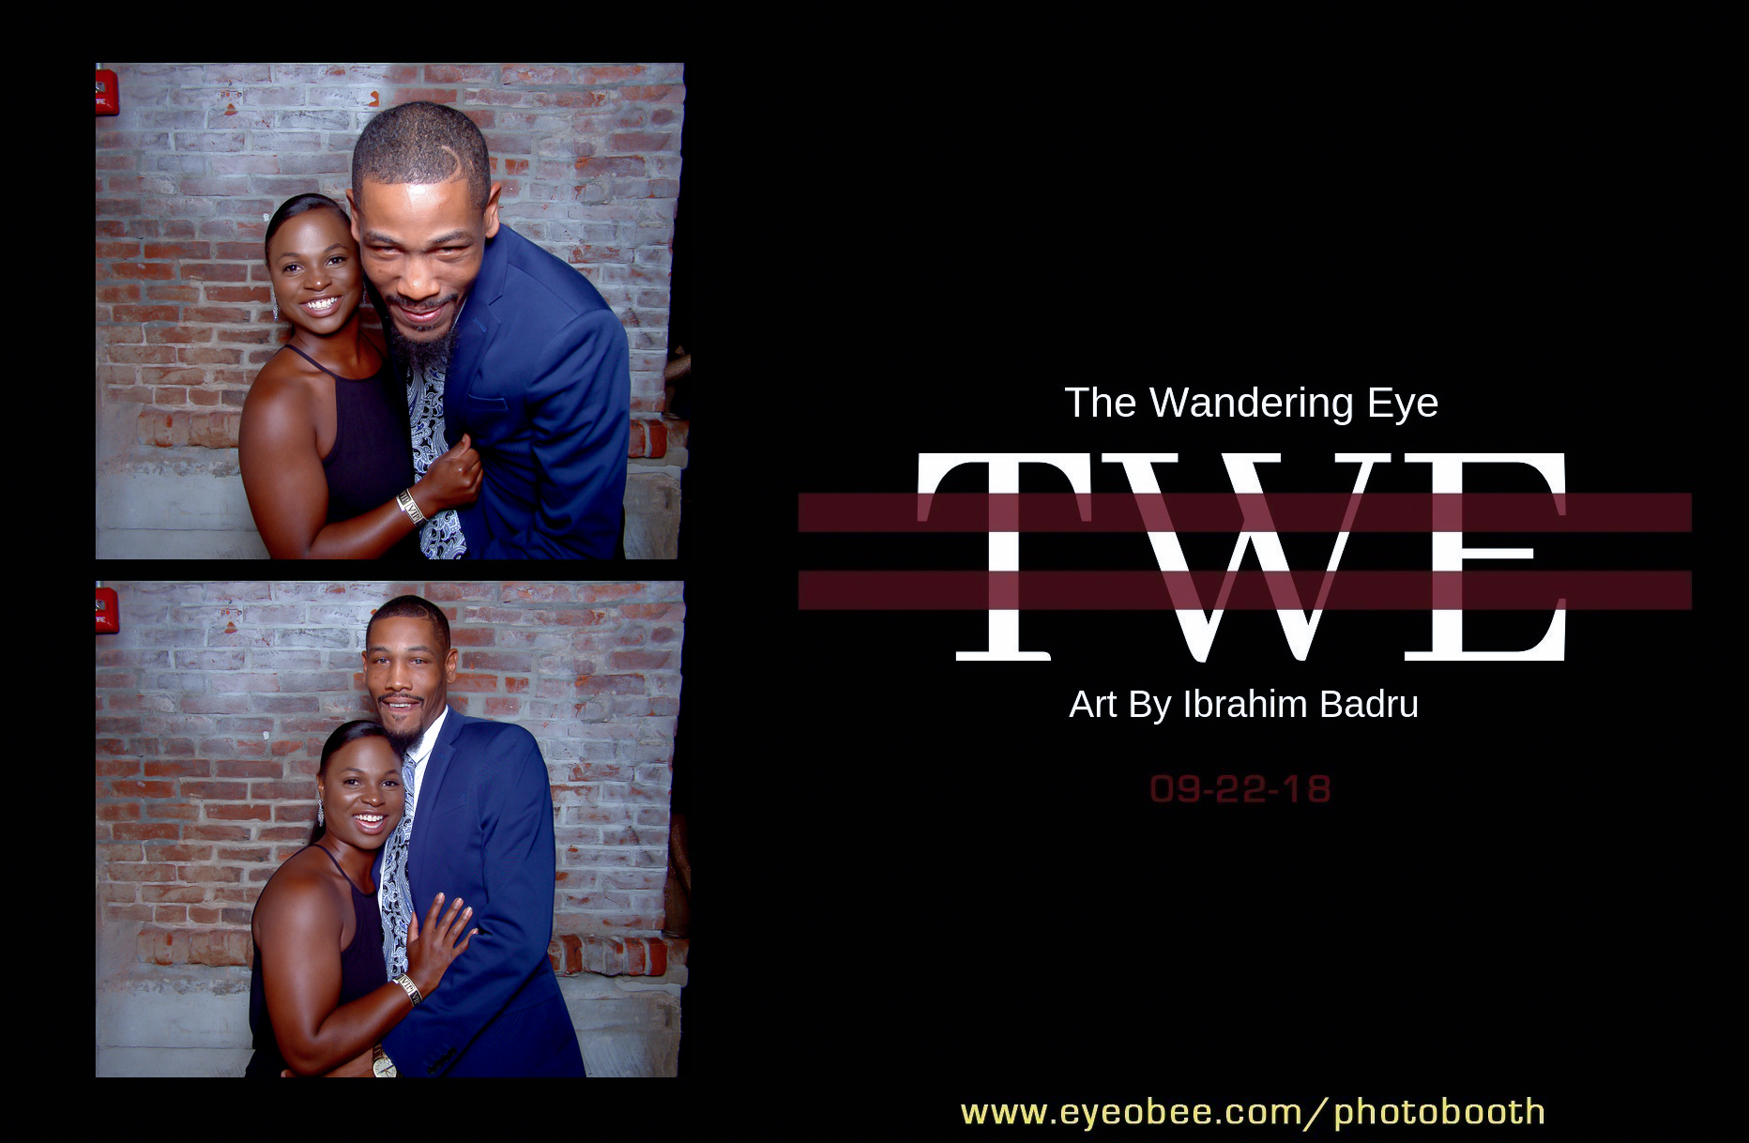 eyeobee PhotoBooth The Wandering eye art by Ibrahim Badru-0-59.jpg